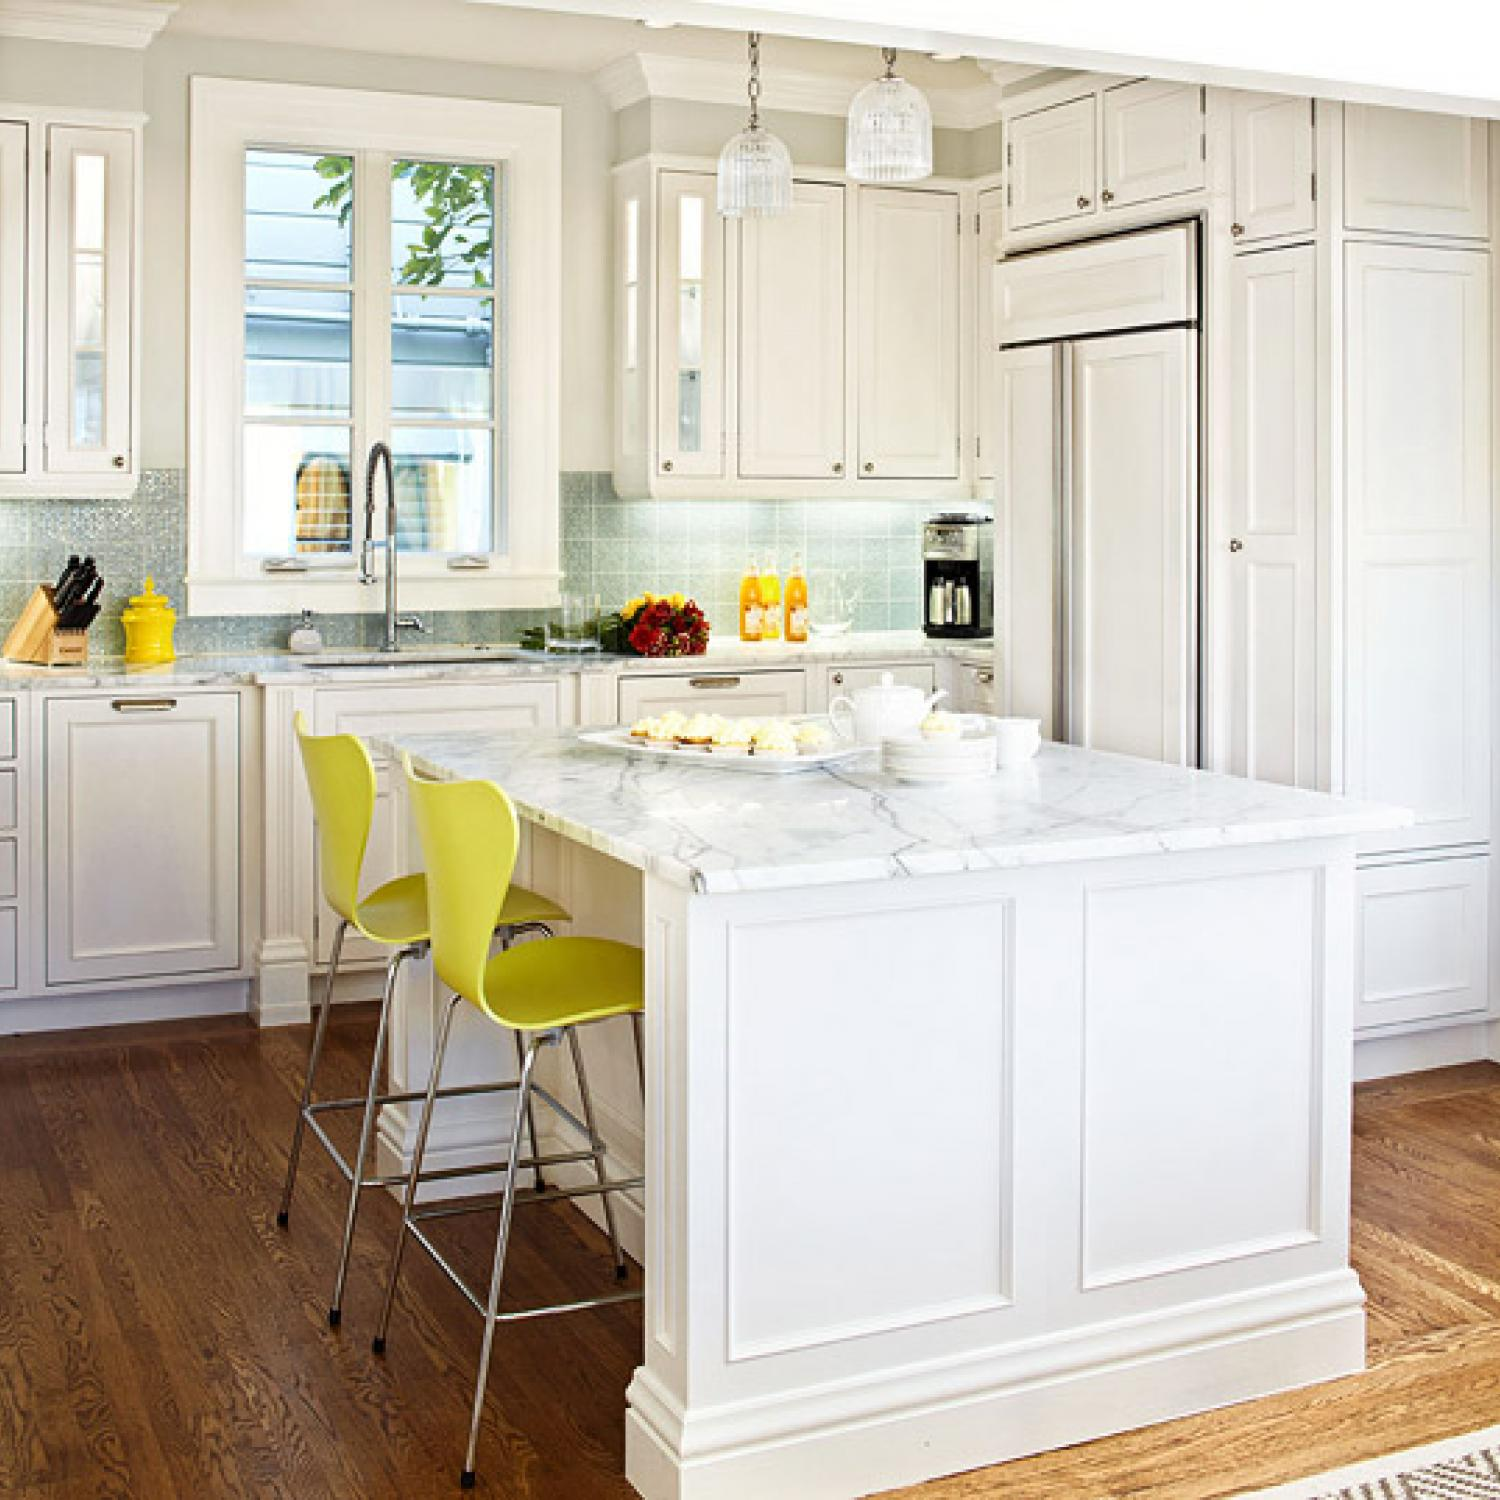 kitchen design ideas white cabinets.  Design Ideas For White Kitchens Traditional Home